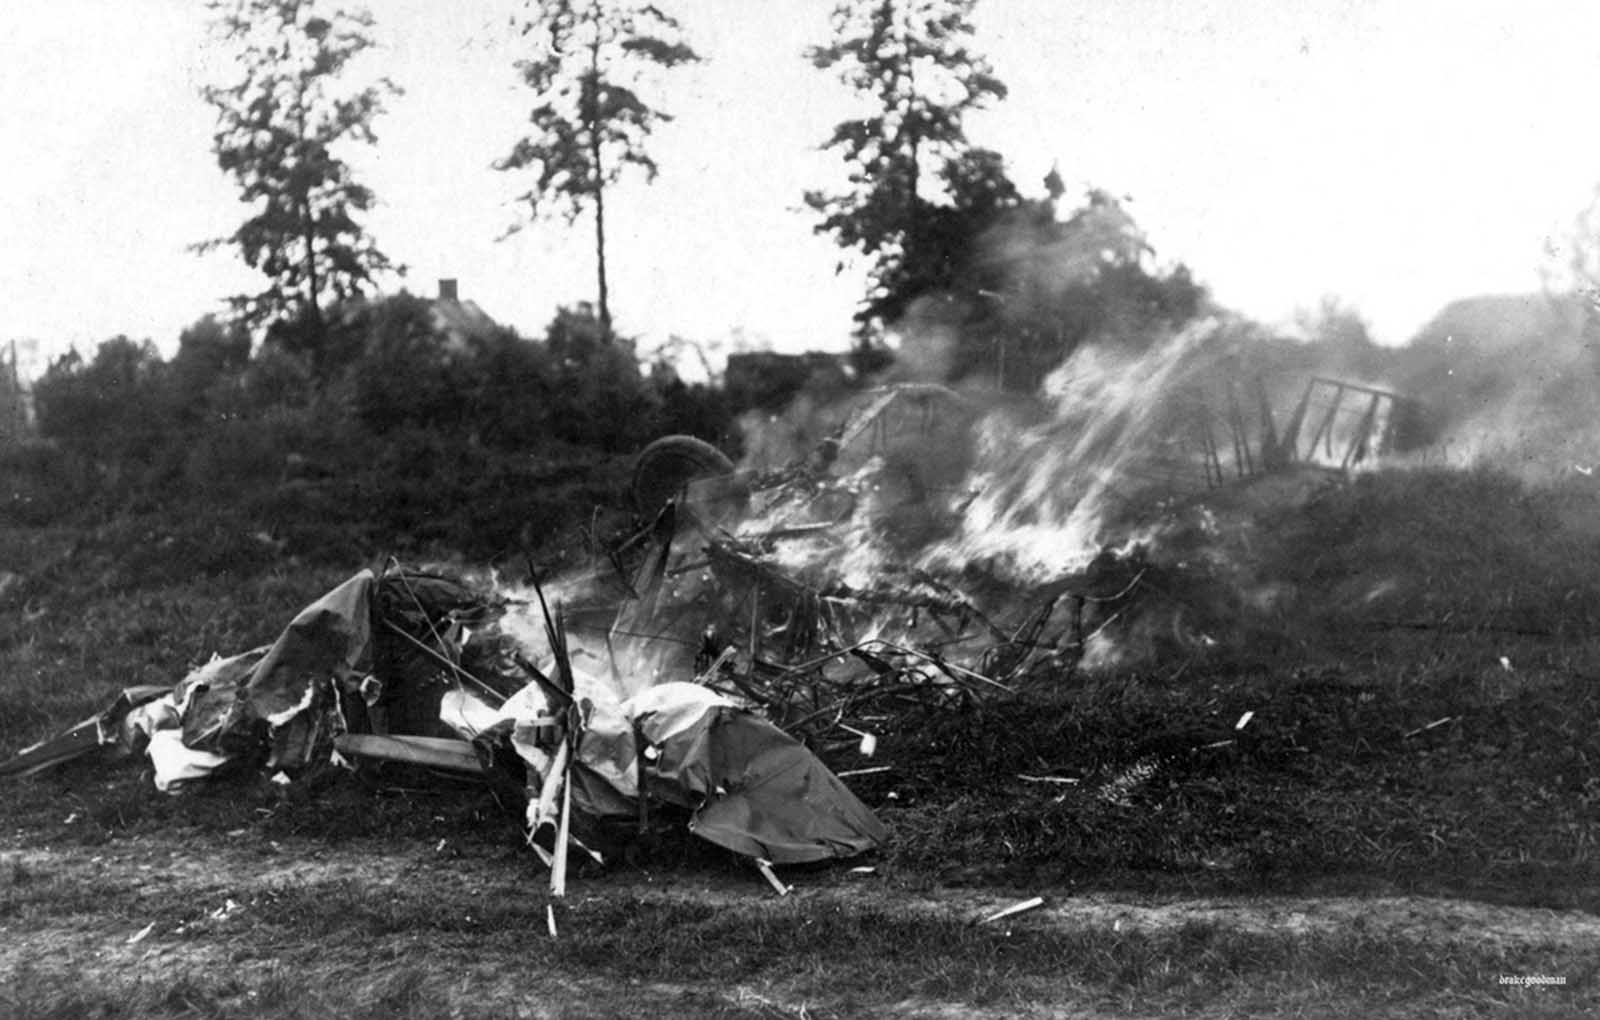 An aircraft. crashed and burning in German territory, ca. 1917.